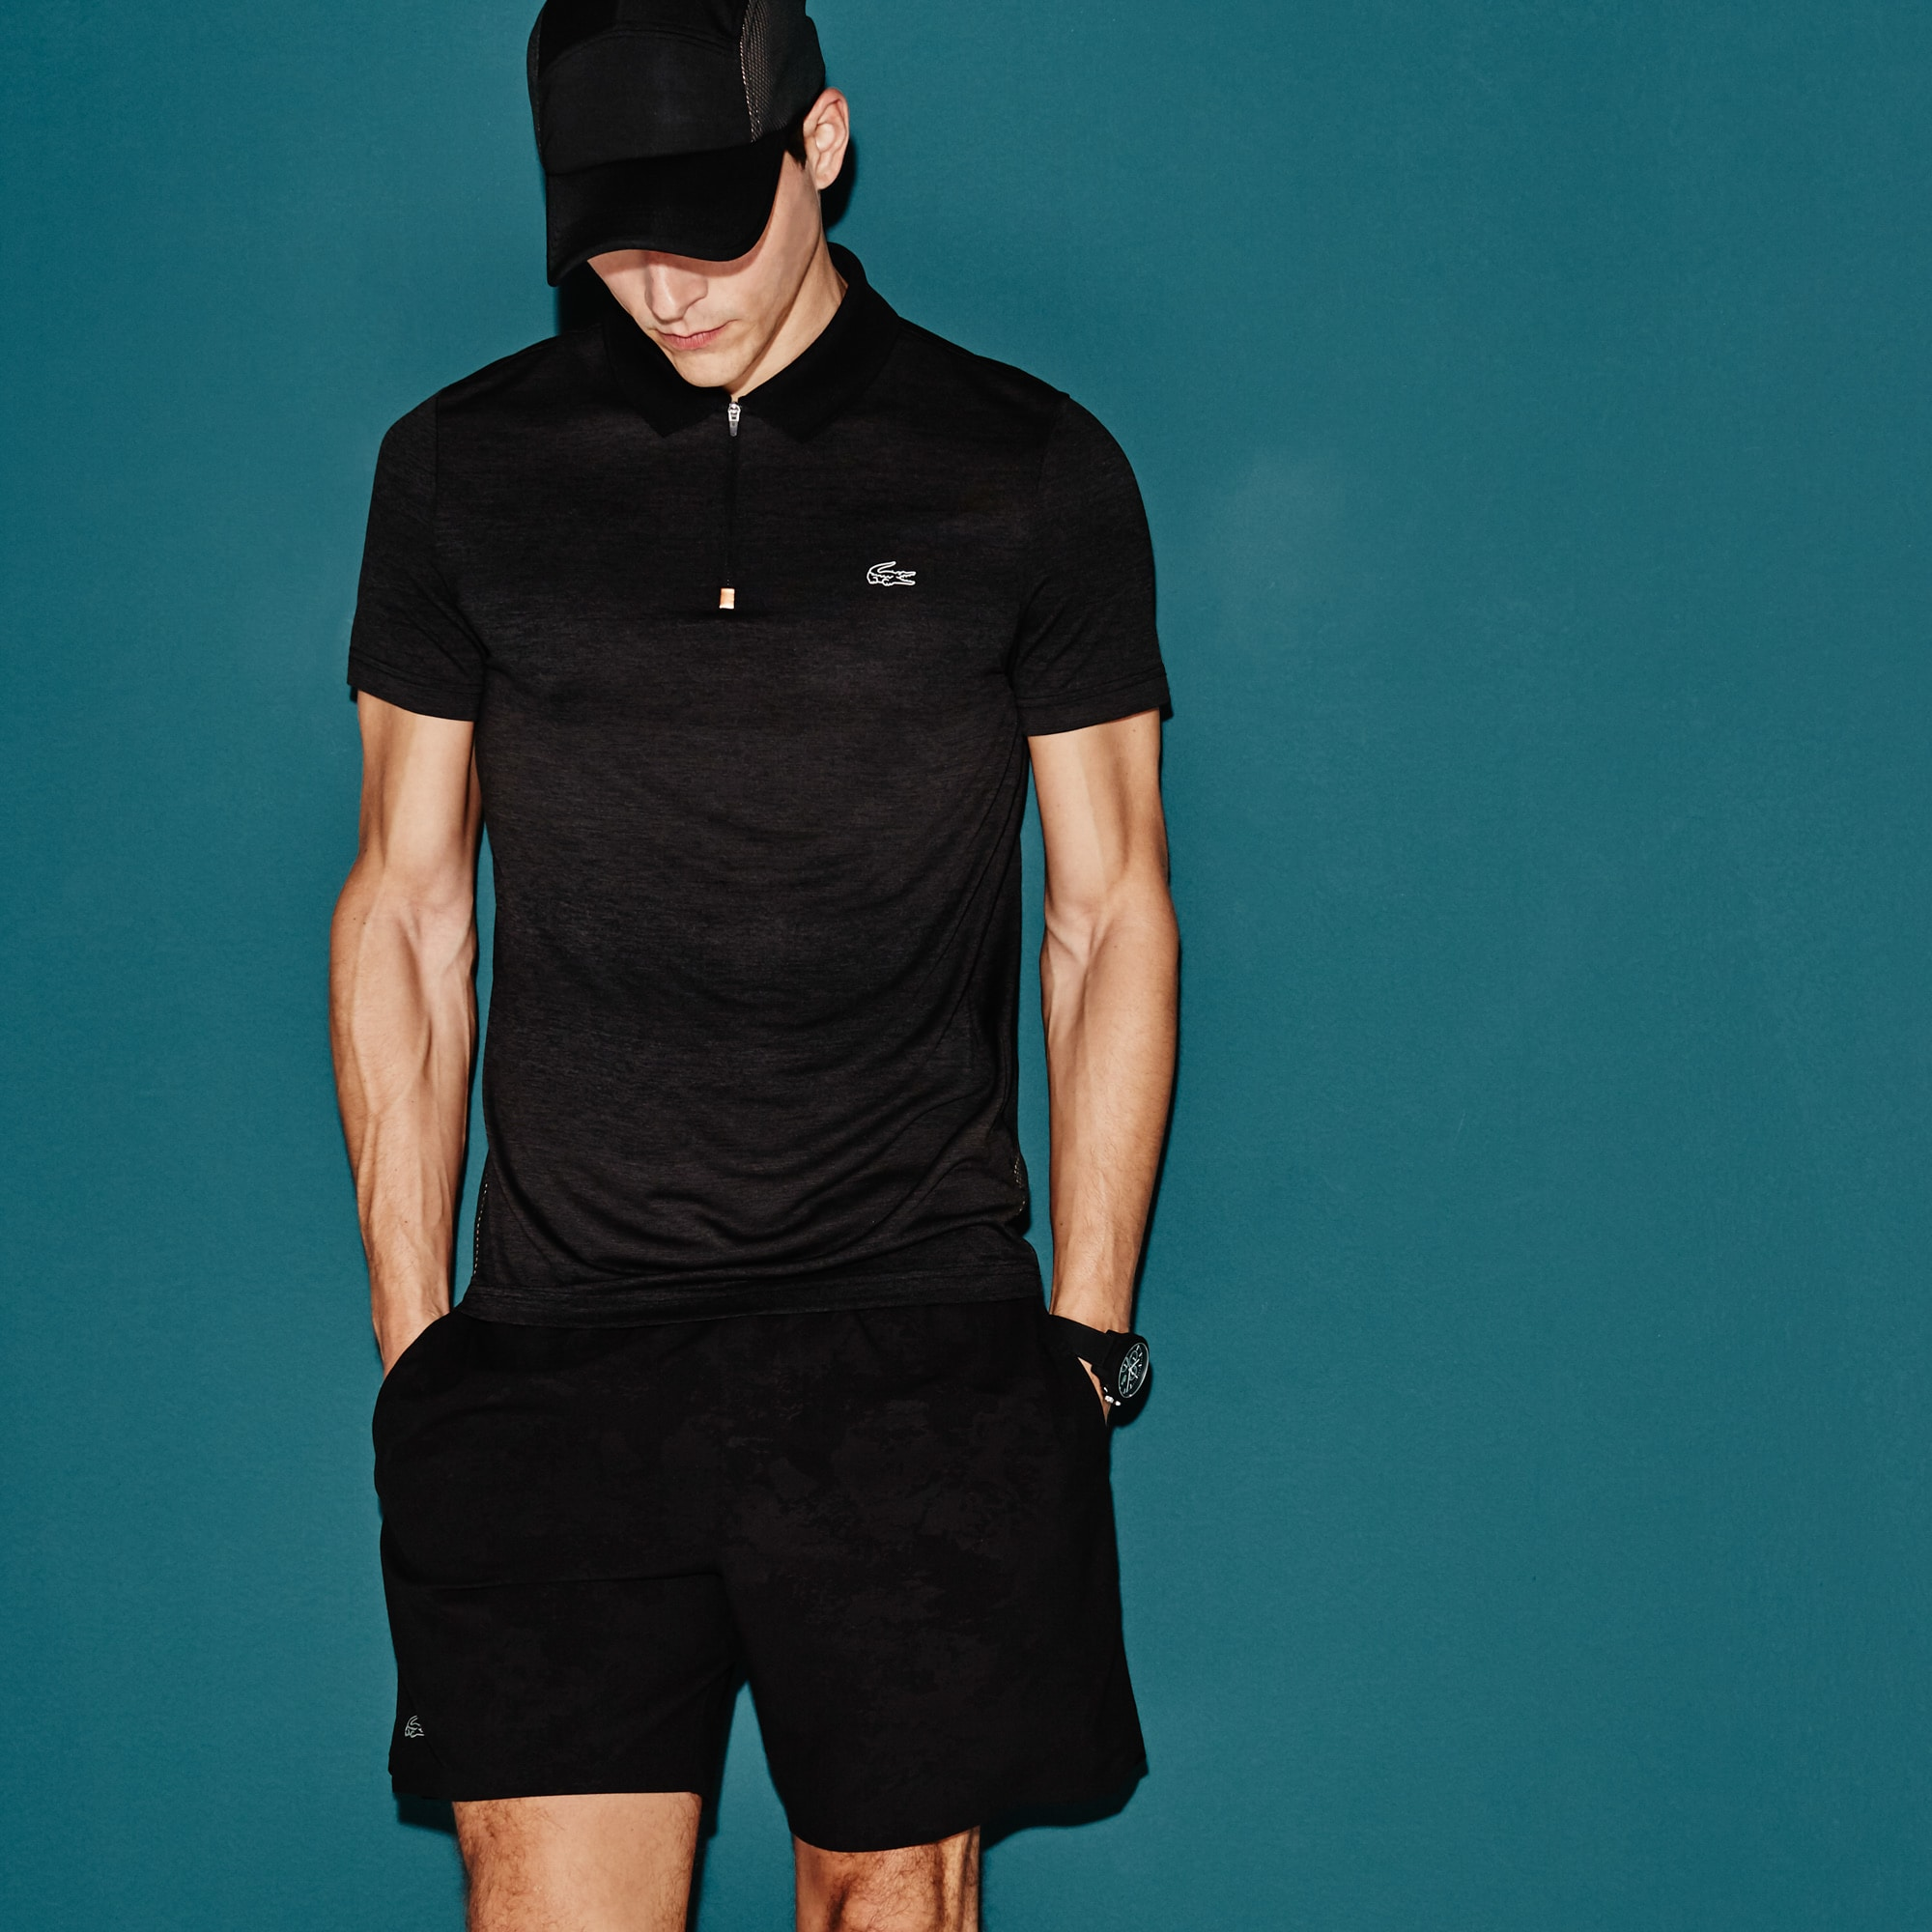 Men's  SPORT Tennis Zip Neck Mesh Back Tech Jersey Polo